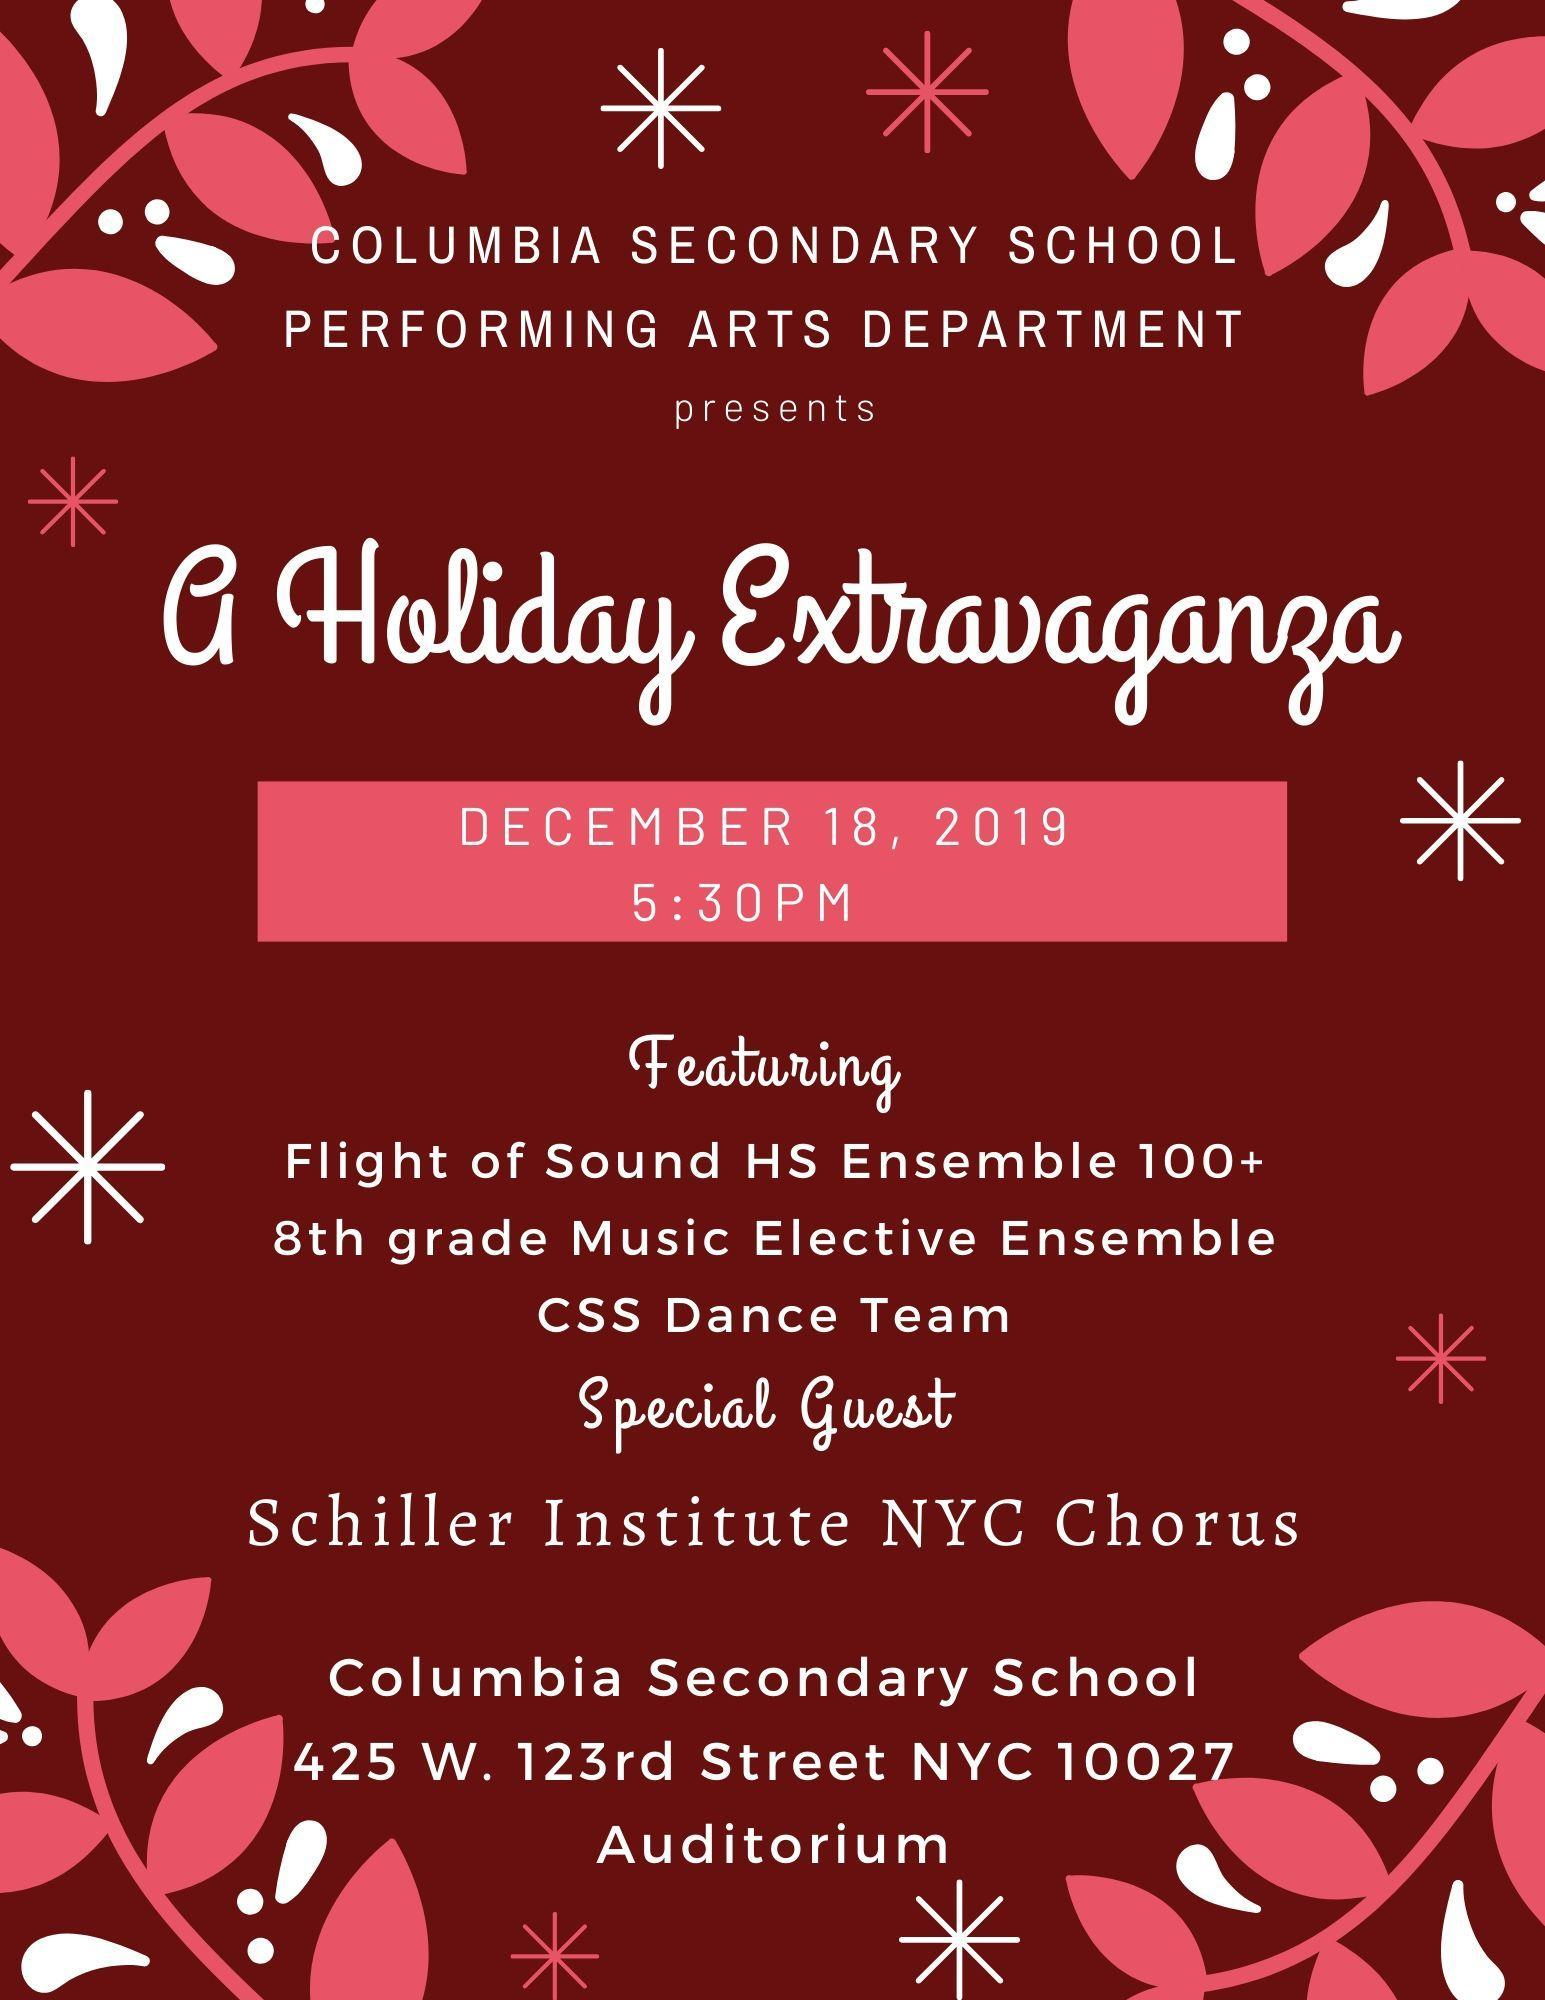 Holiday Extravaganza Poster